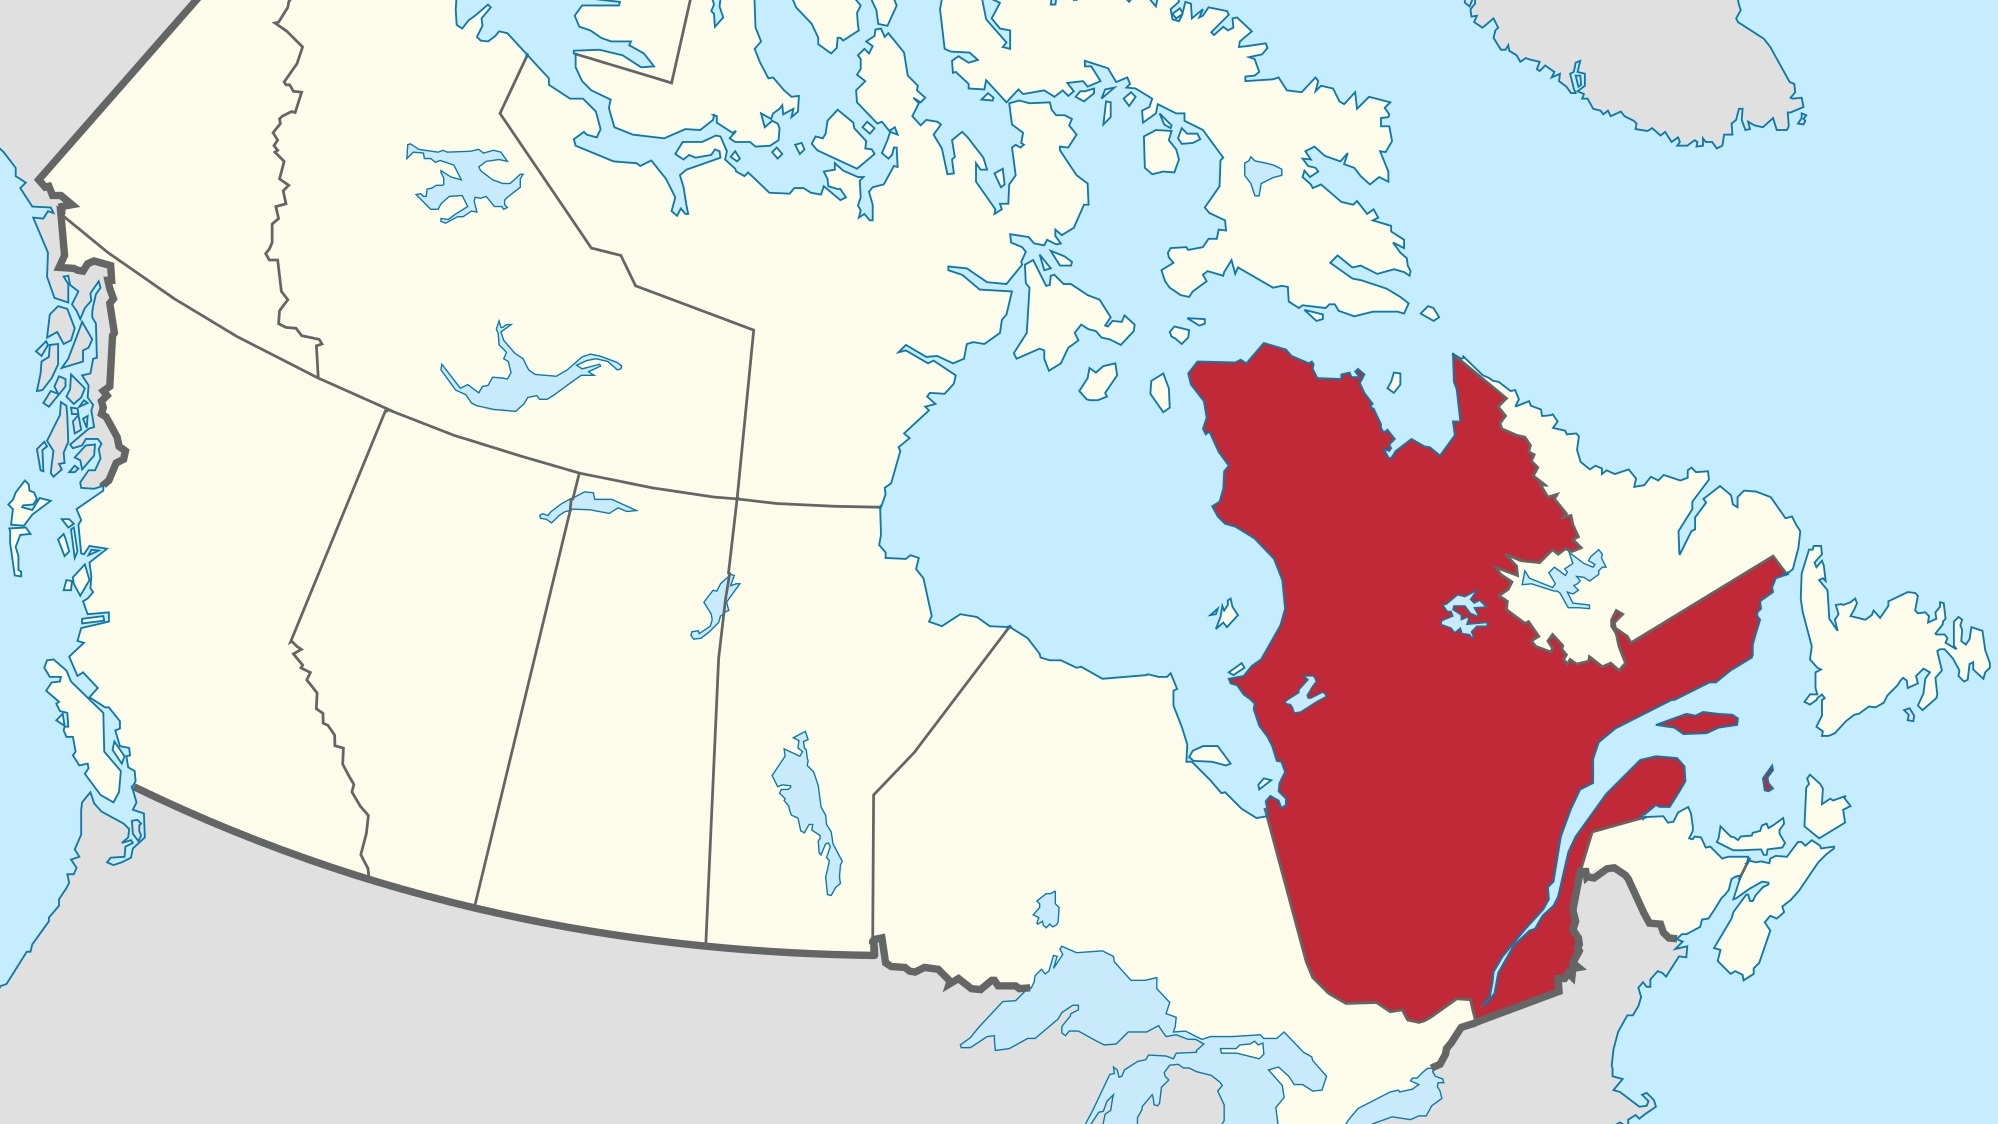 Province of Quebec in Canada